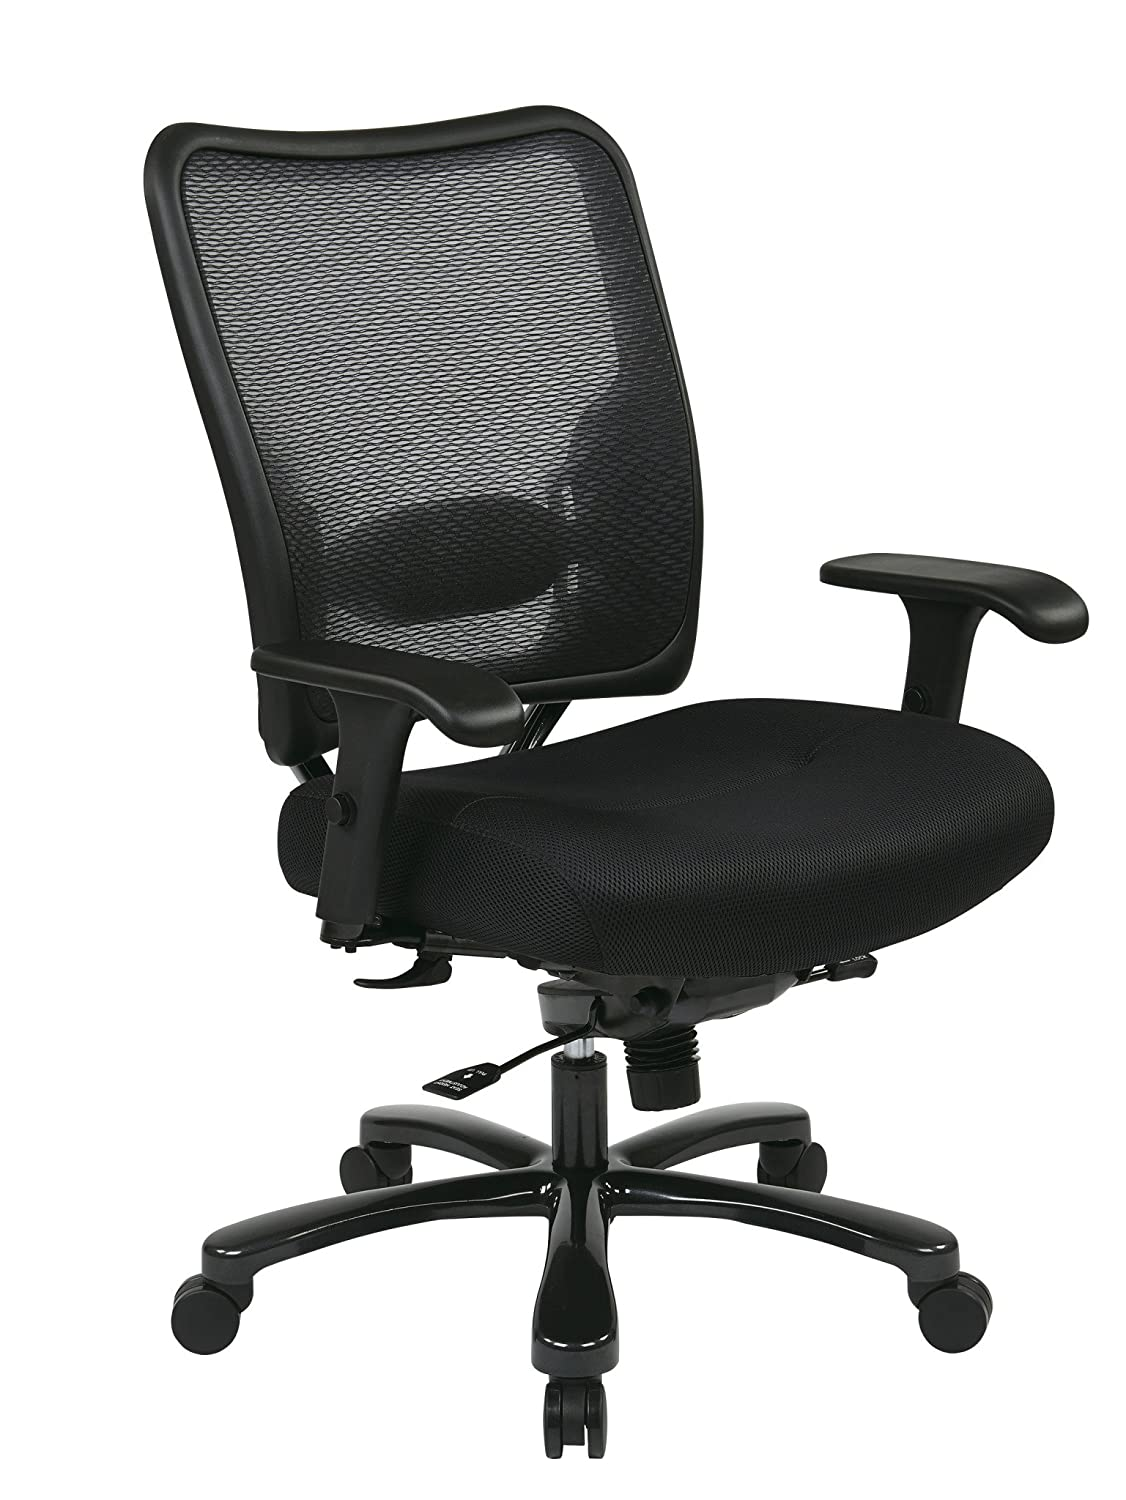 Best office chair 2016 - Office Star 7537a773 Space Air Grid Executive Big And Tall Chair Air Grid Back Mesh Seat